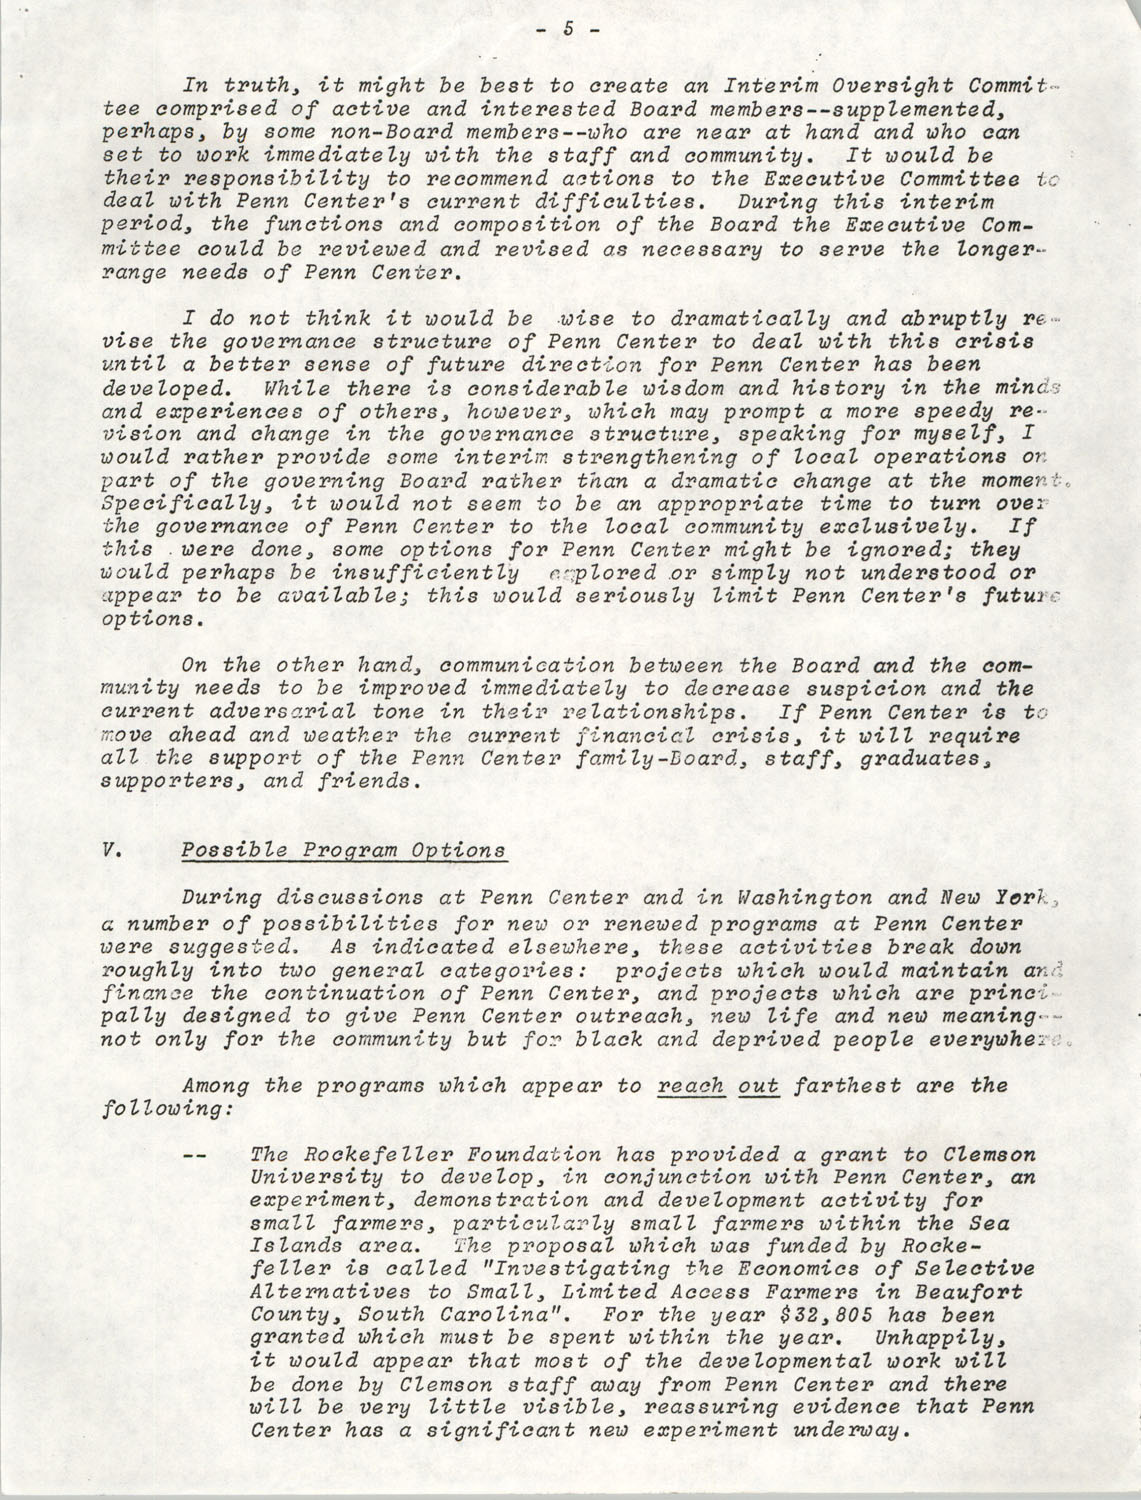 Planning and Management Assistance Project Report, Penn Community Services, April 1978, Page 5